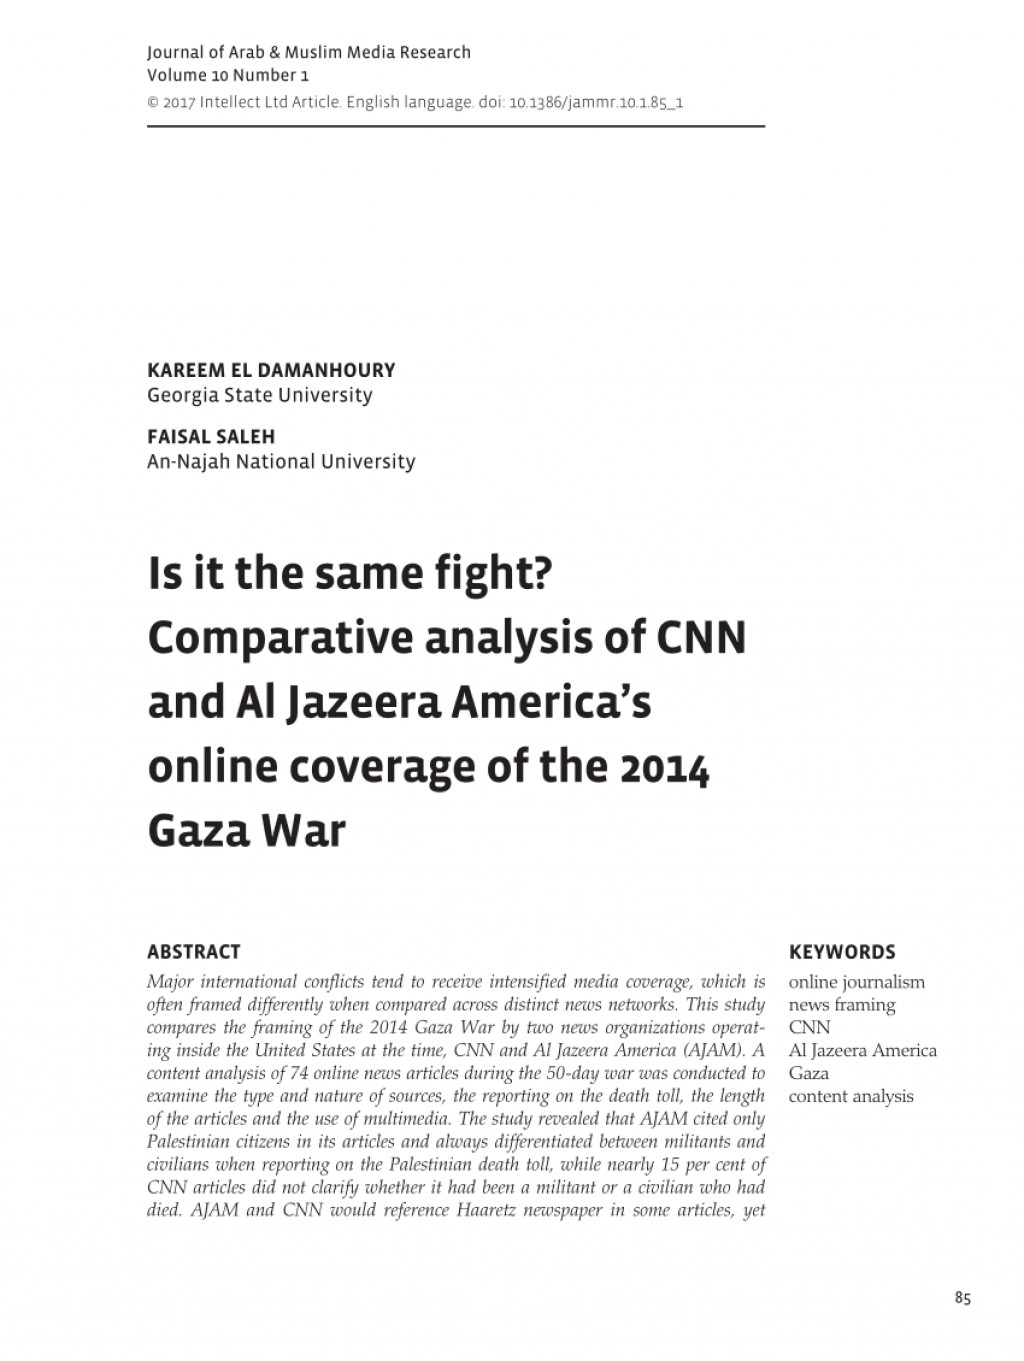 006 Is Cnn Credible Source For Research Paper Staggering A Large